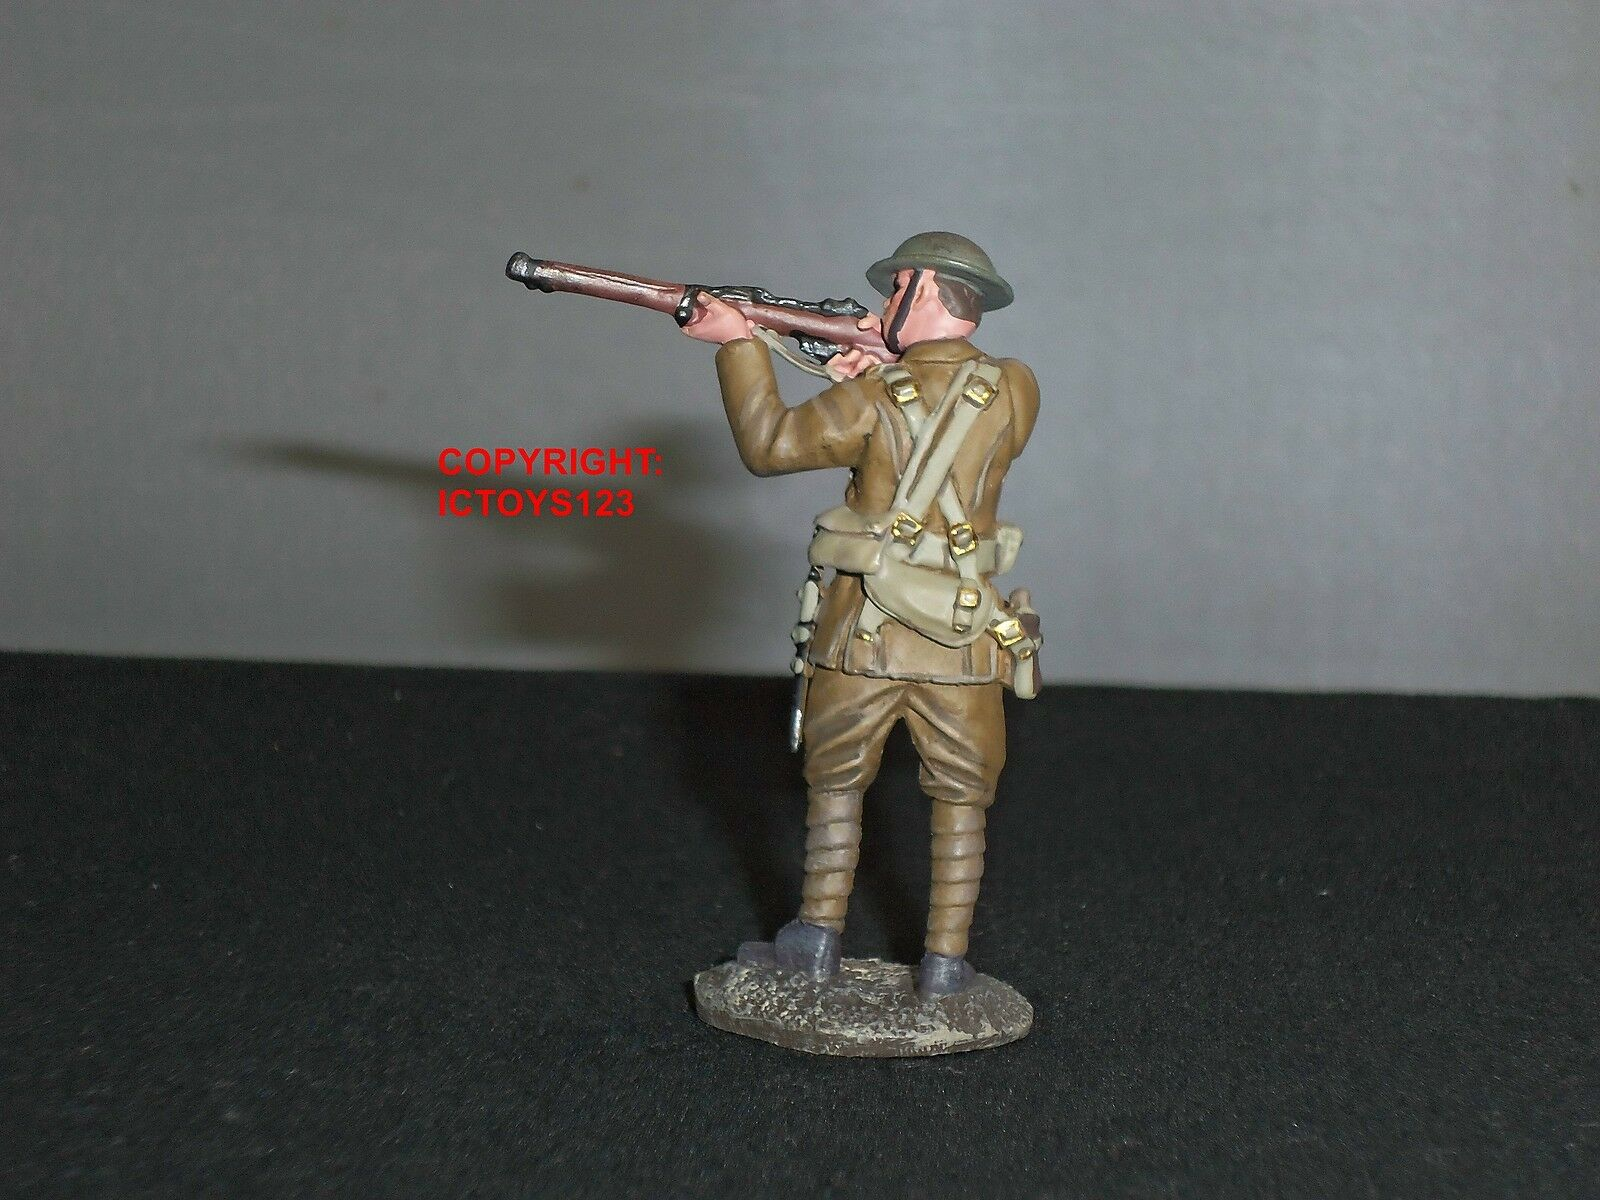 BRITAINS 23065 WORLD WAR ONE BRITISH 1916 INFANTRY STANDING FIRING OVER PARAPIT